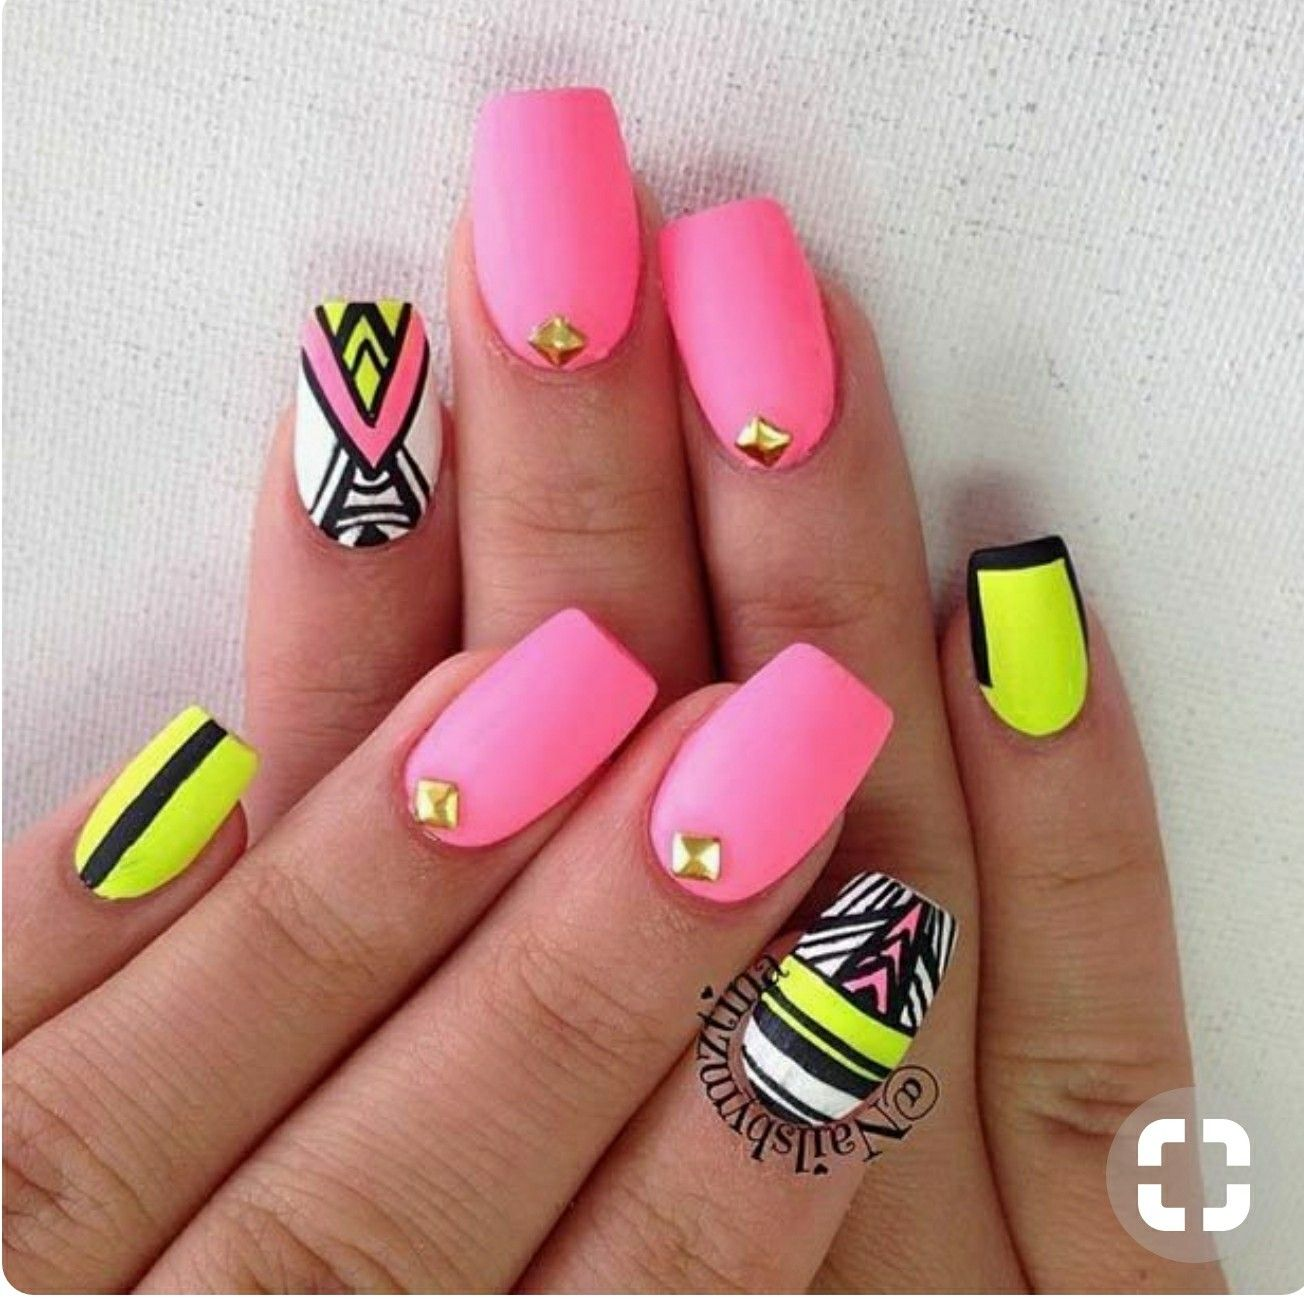 Pin by Courteney Greer on pink nail polish | Pinterest | Aztec nails ...